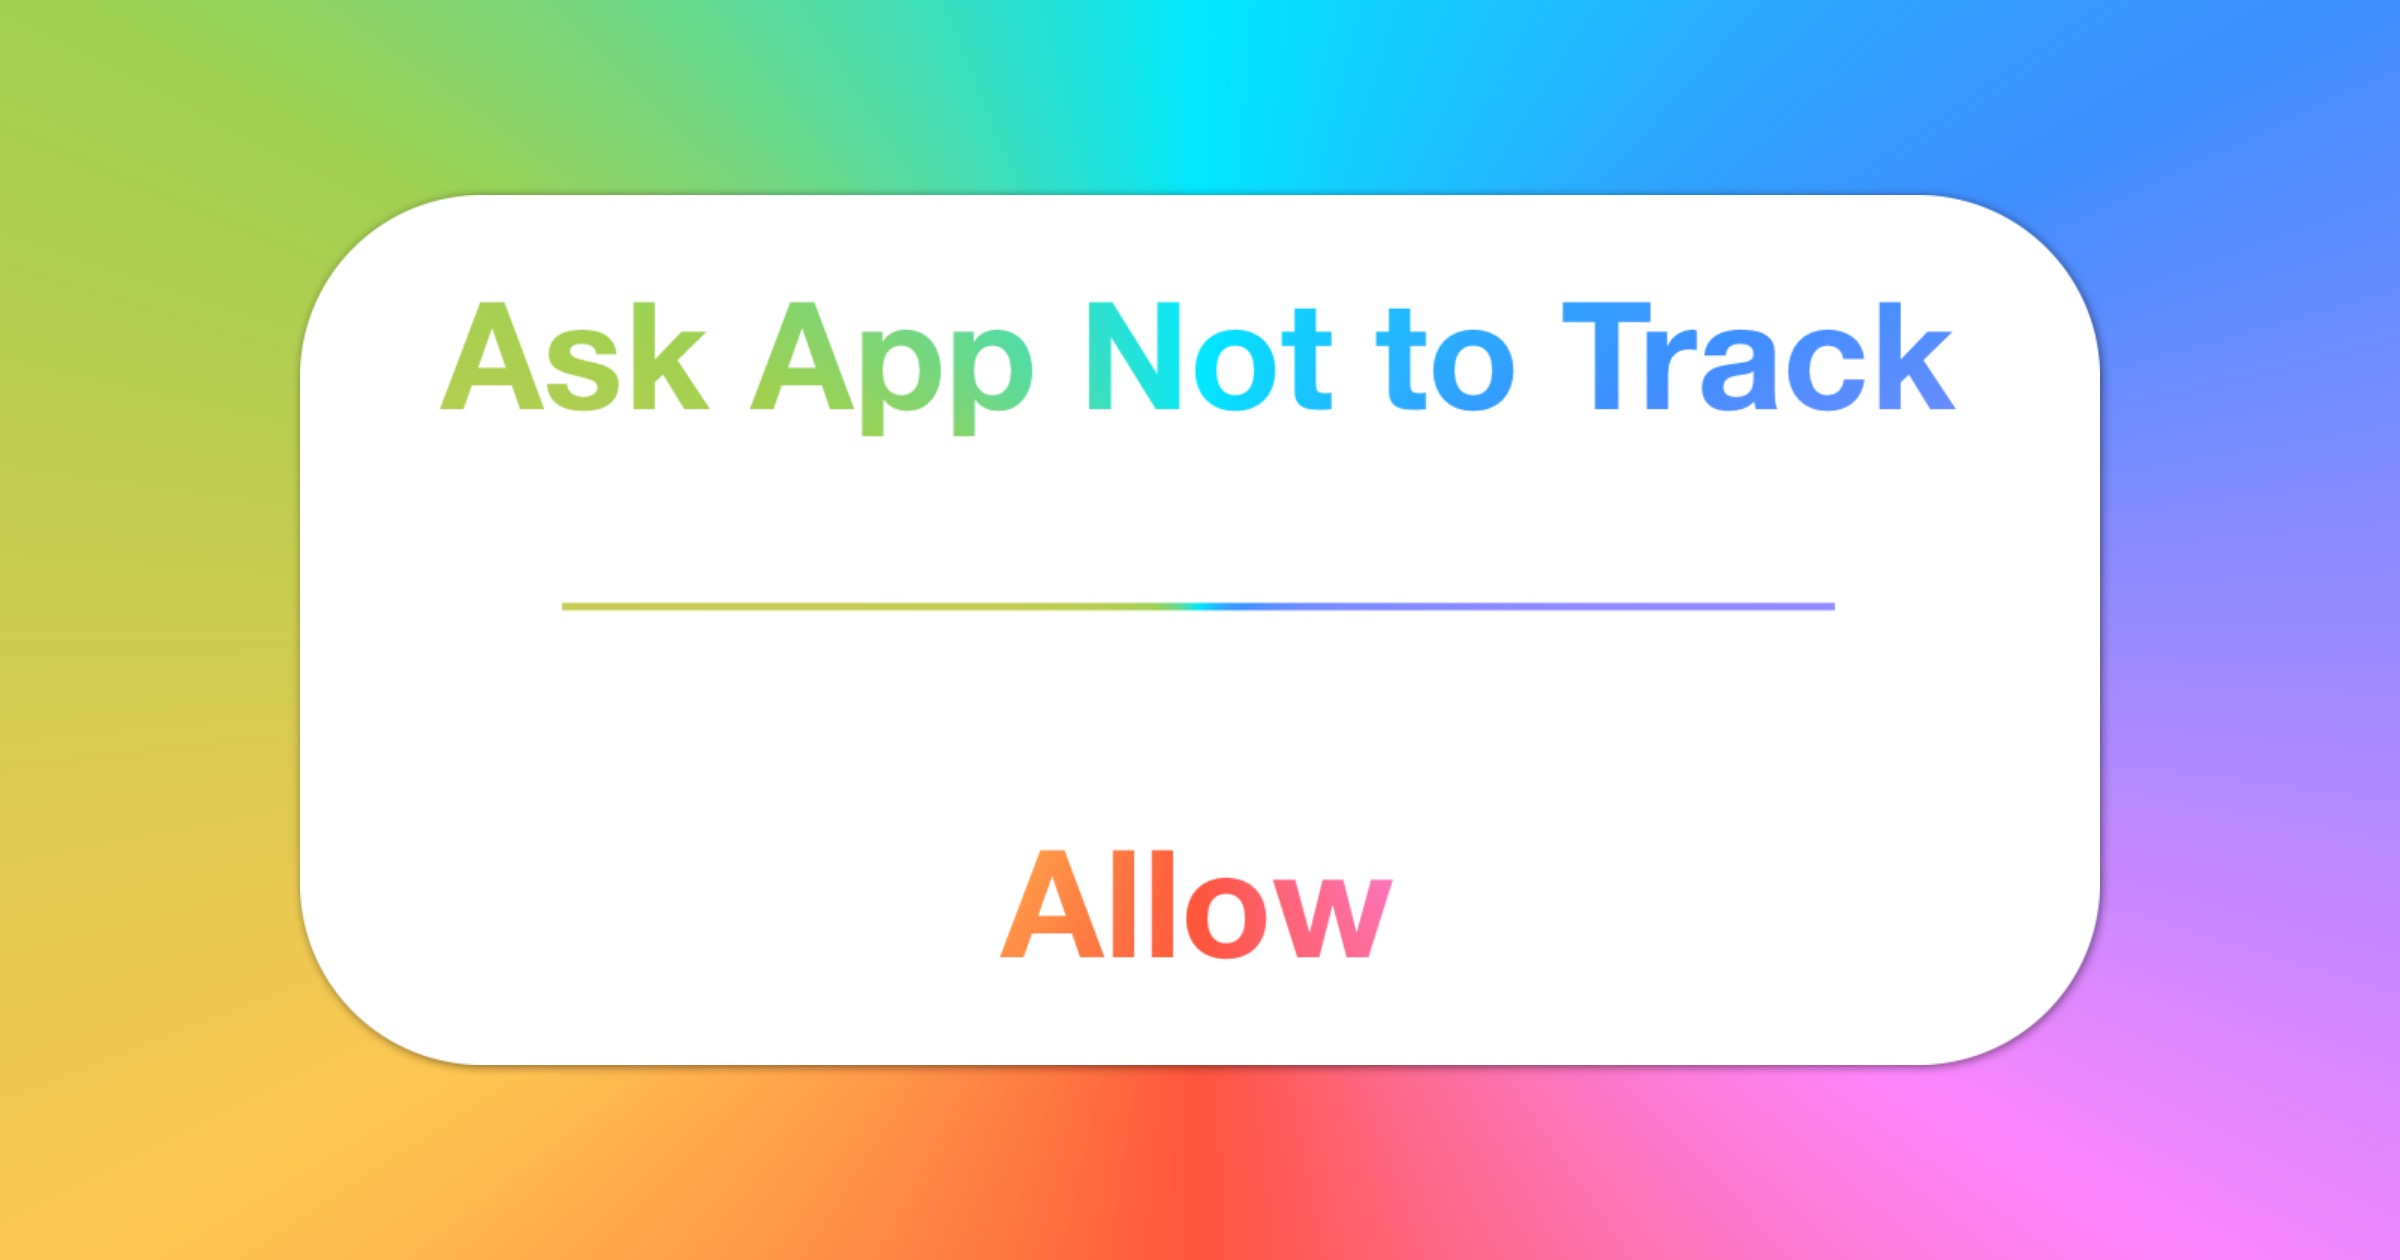 App tracking transparency in iOS 14.5